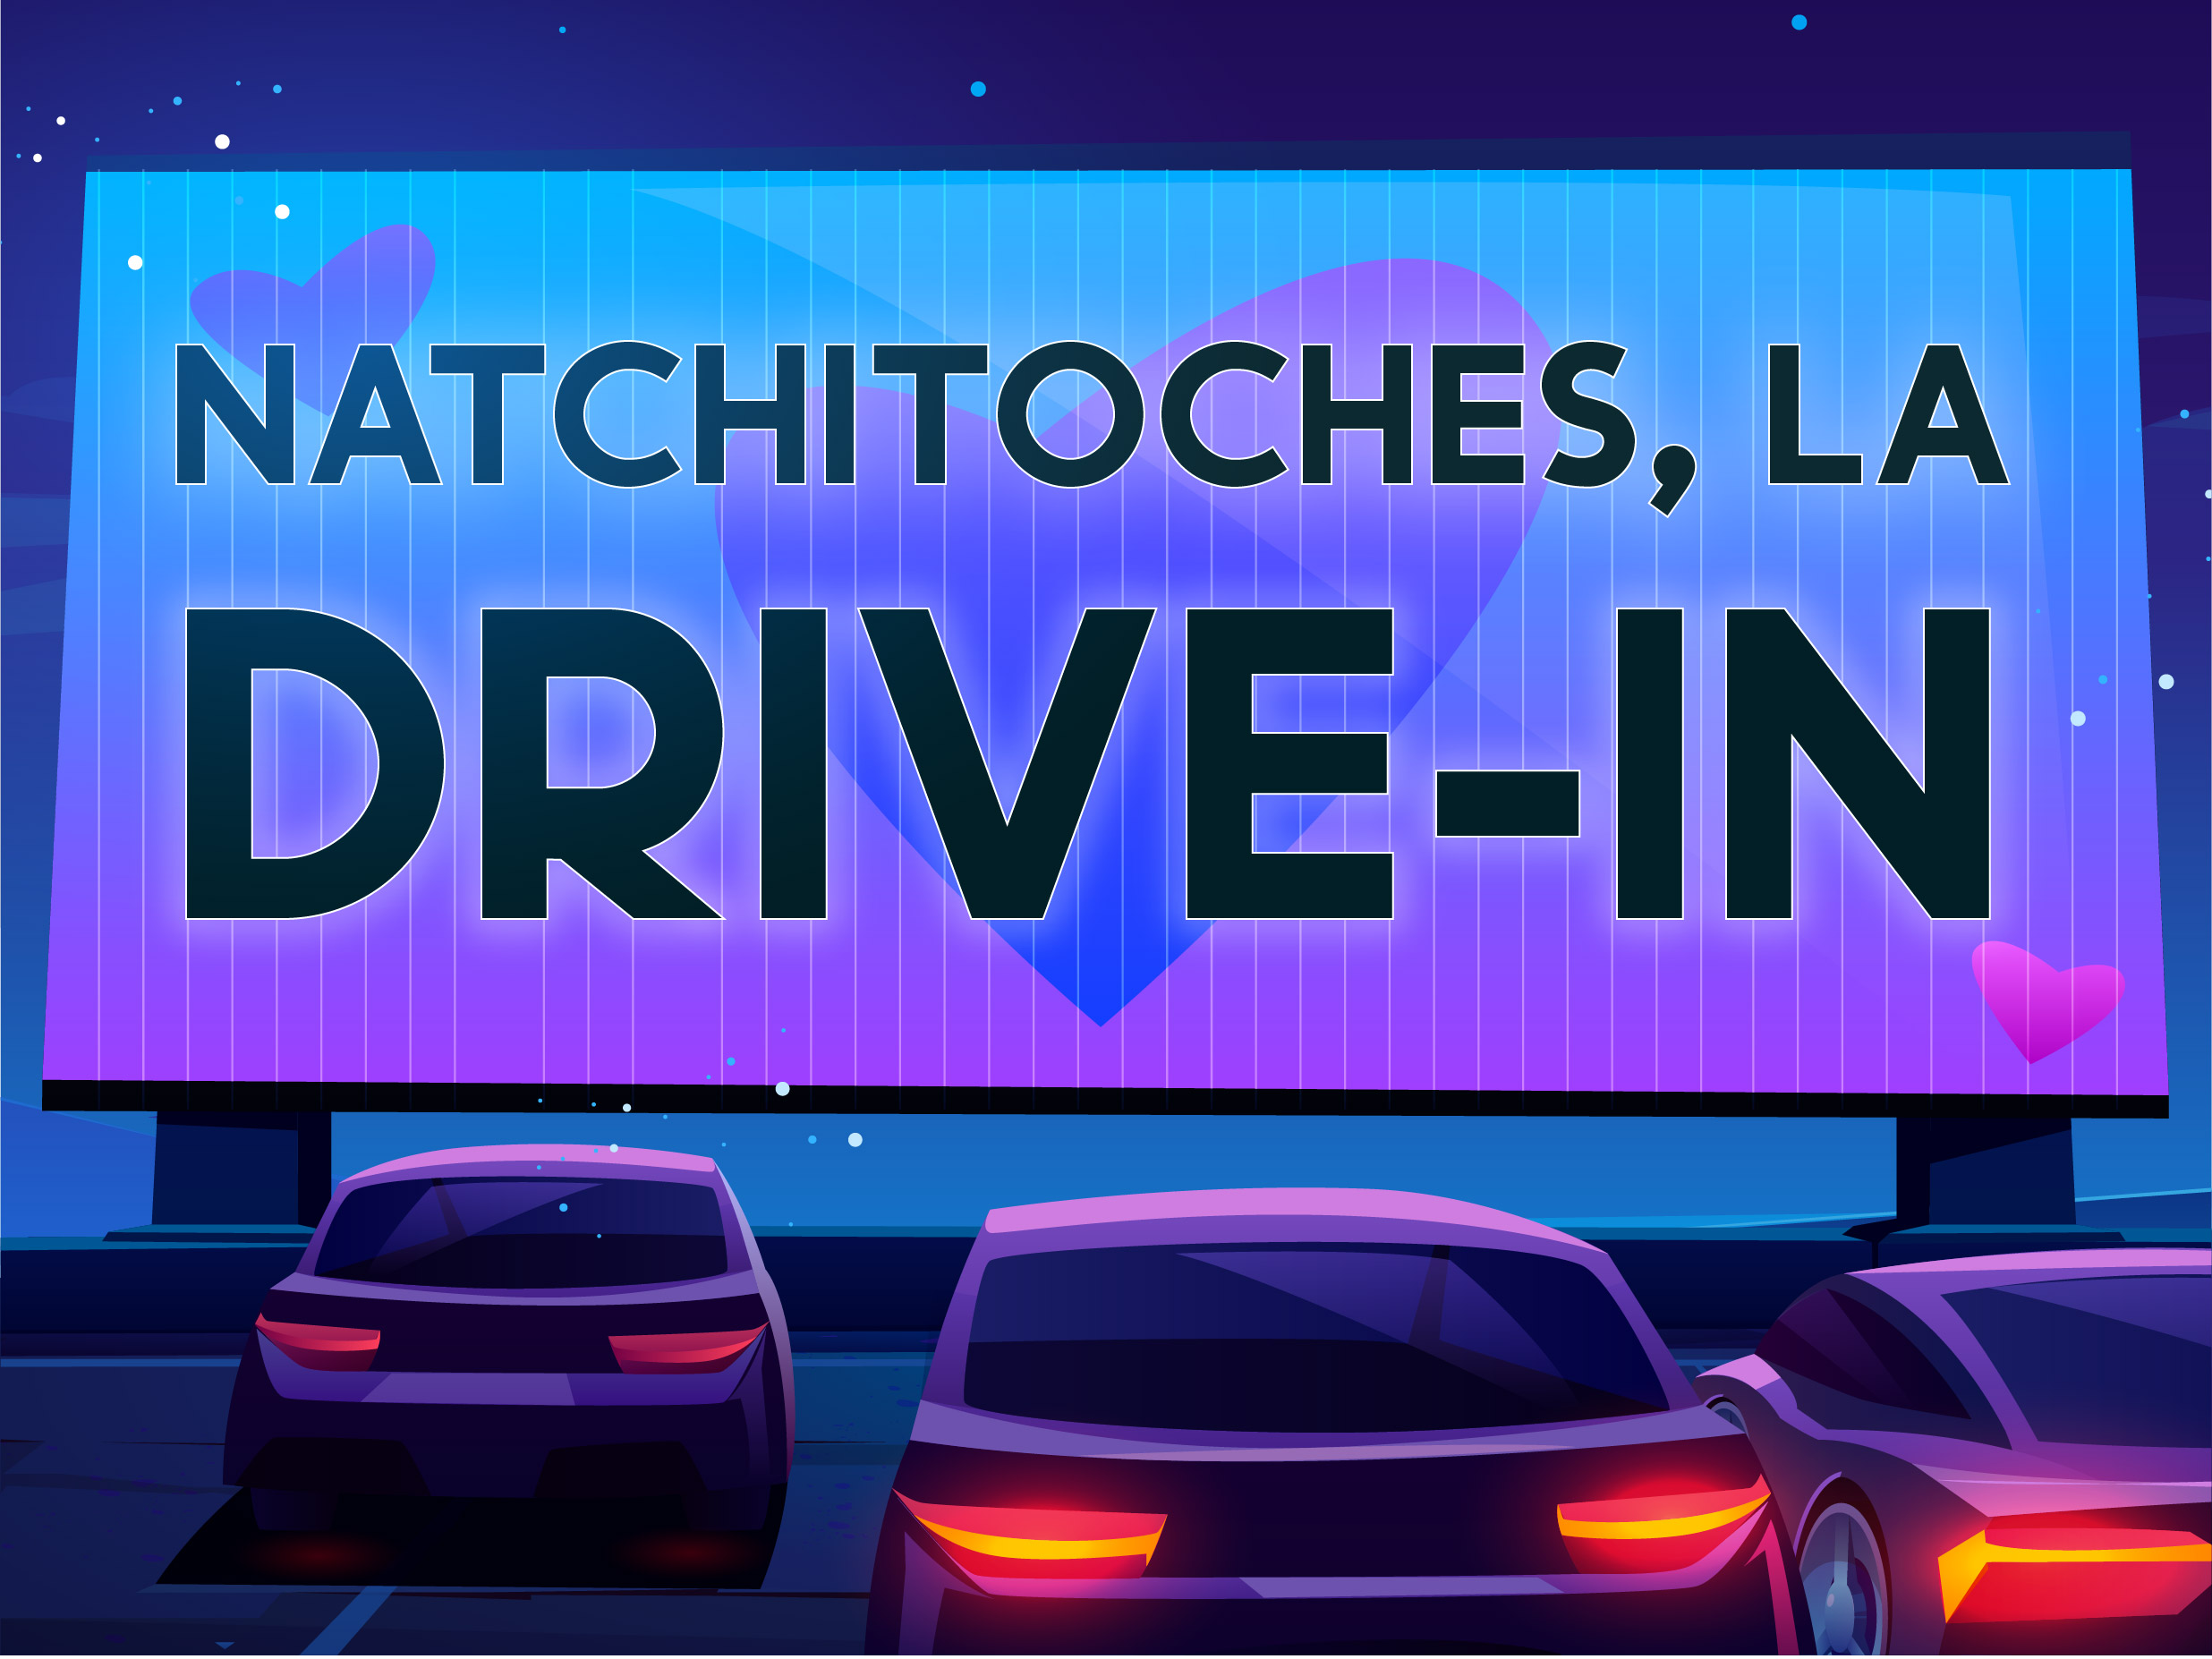 Image of Natchitoches, LA - Drive-In Cinema